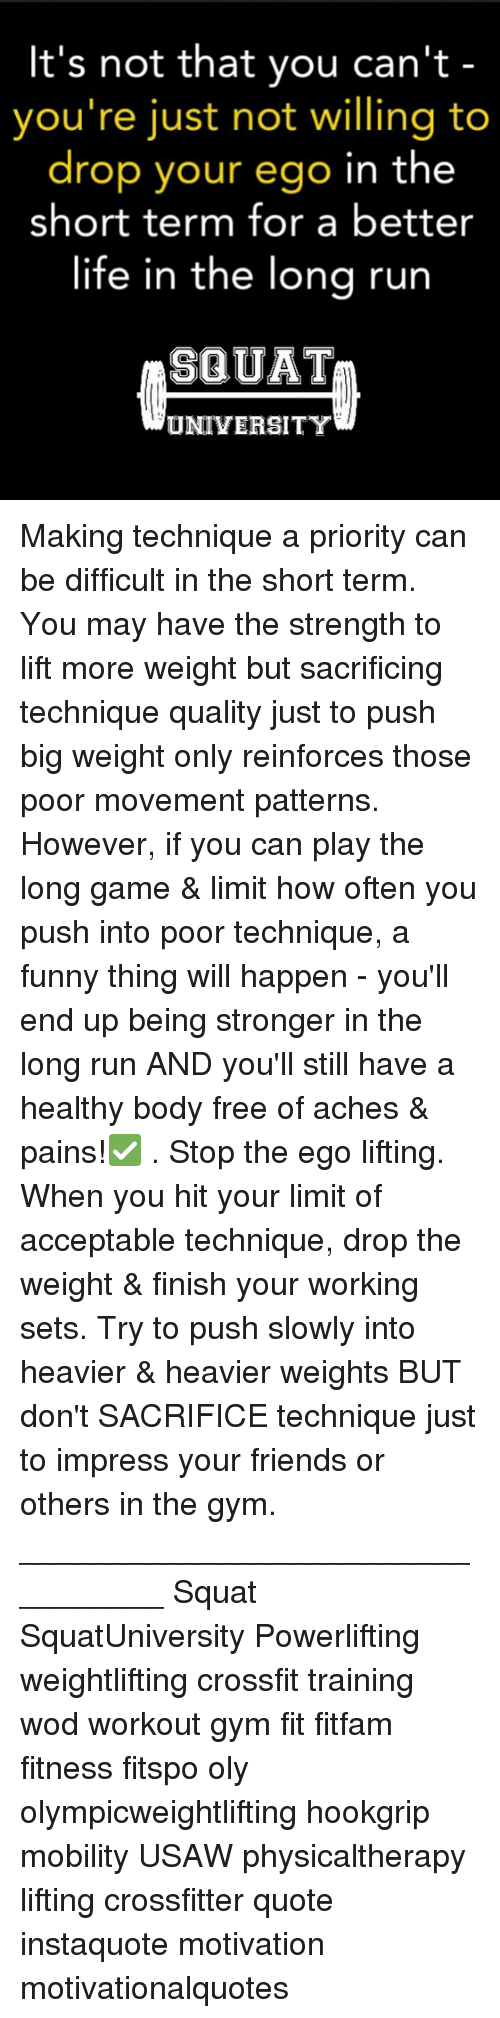 Friends, Funny, and Gym: It's not that you can't  you're just not willing to  drop your ego in the  short term for a better  life in the lona run  SQUAT  UNIVERSITY Making technique a priority can be difficult in the short term. You may have the strength to lift more weight but sacrificing technique quality just to push big weight only reinforces those poor movement patterns. However, if you can play the long game & limit how often you push into poor technique, a funny thing will happen - you'll end up being stronger in the long run AND you'll still have a healthy body free of aches & pains!✅ . Stop the ego lifting. When you hit your limit of acceptable technique, drop the weight & finish your working sets. Try to push slowly into heavier & heavier weights BUT don't SACRIFICE technique just to impress your friends or others in the gym. _________________________________ Squat SquatUniversity Powerlifting weightlifting crossfit training wod workout gym fit fitfam fitness fitspo oly olympicweightlifting hookgrip mobility USAW physicaltherapy lifting crossfitter quote instaquote motivation motivationalquotes